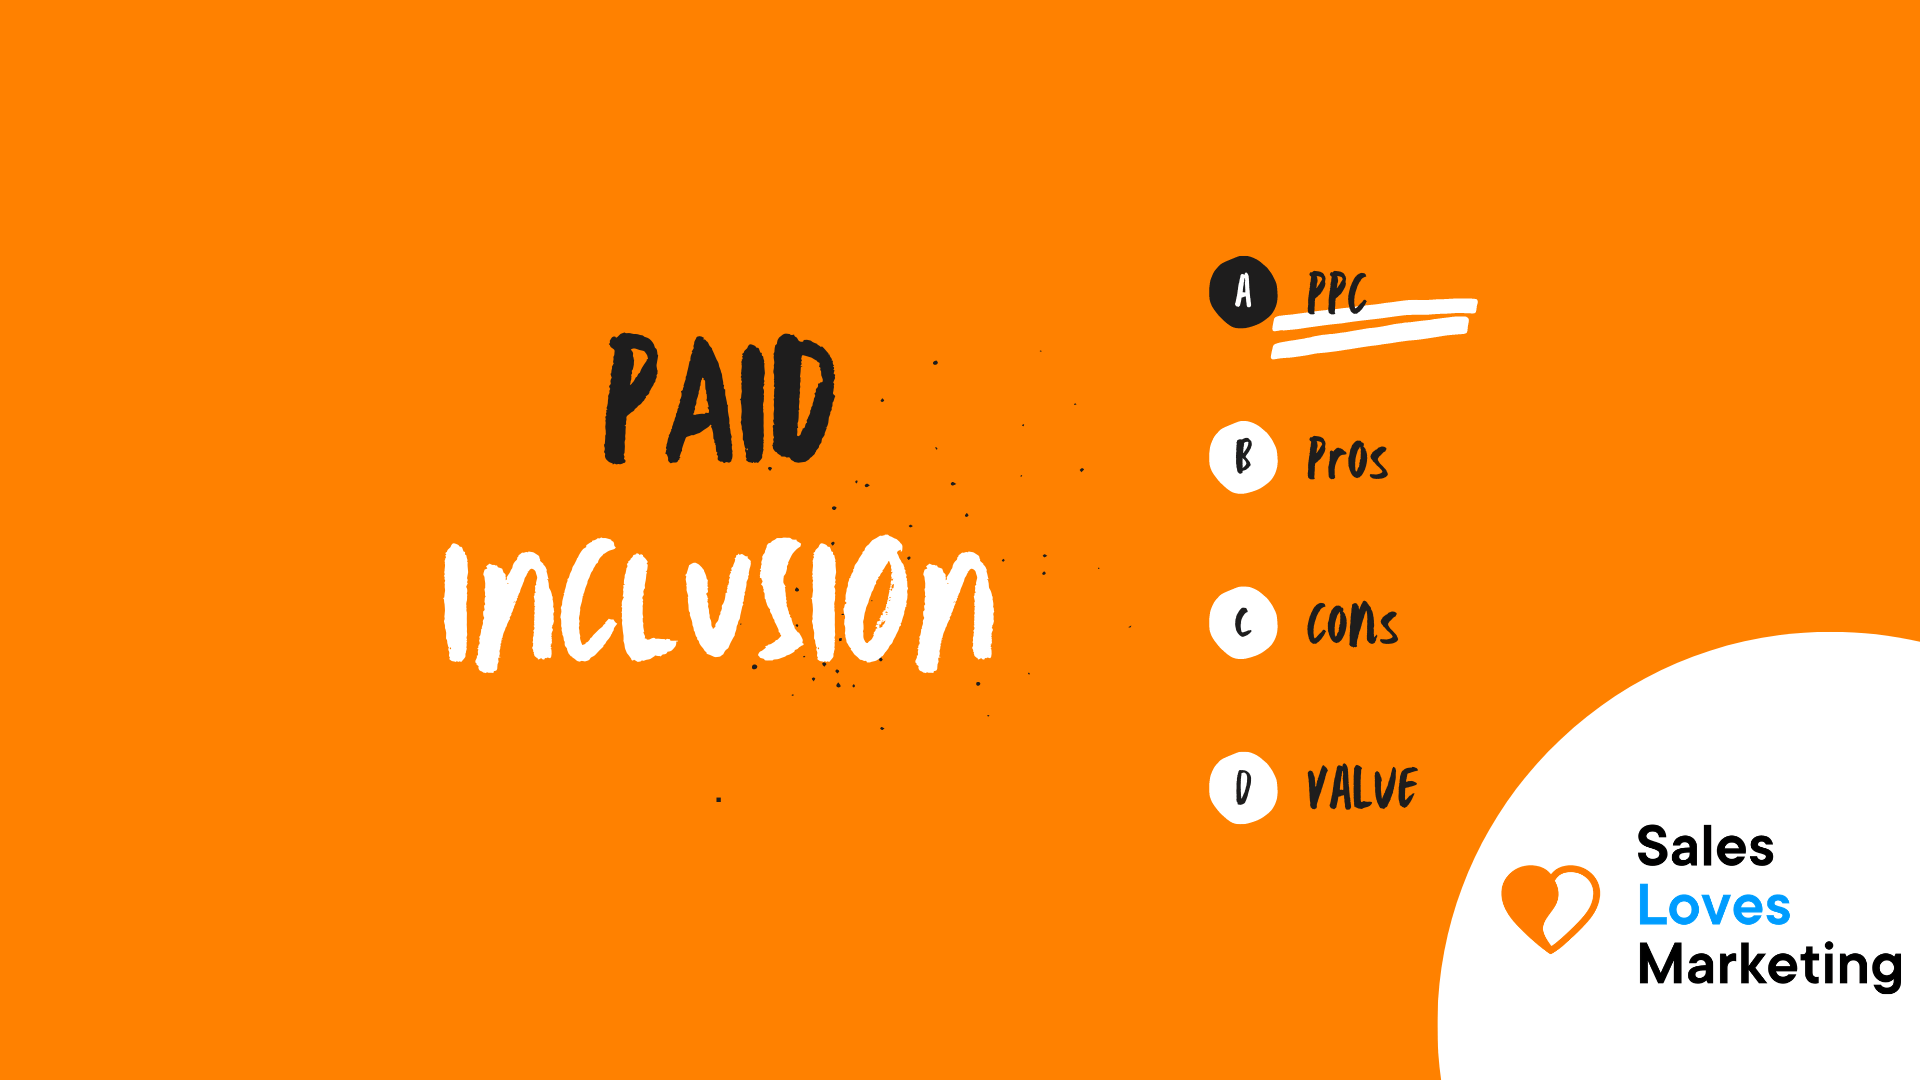 Paid Inclusing